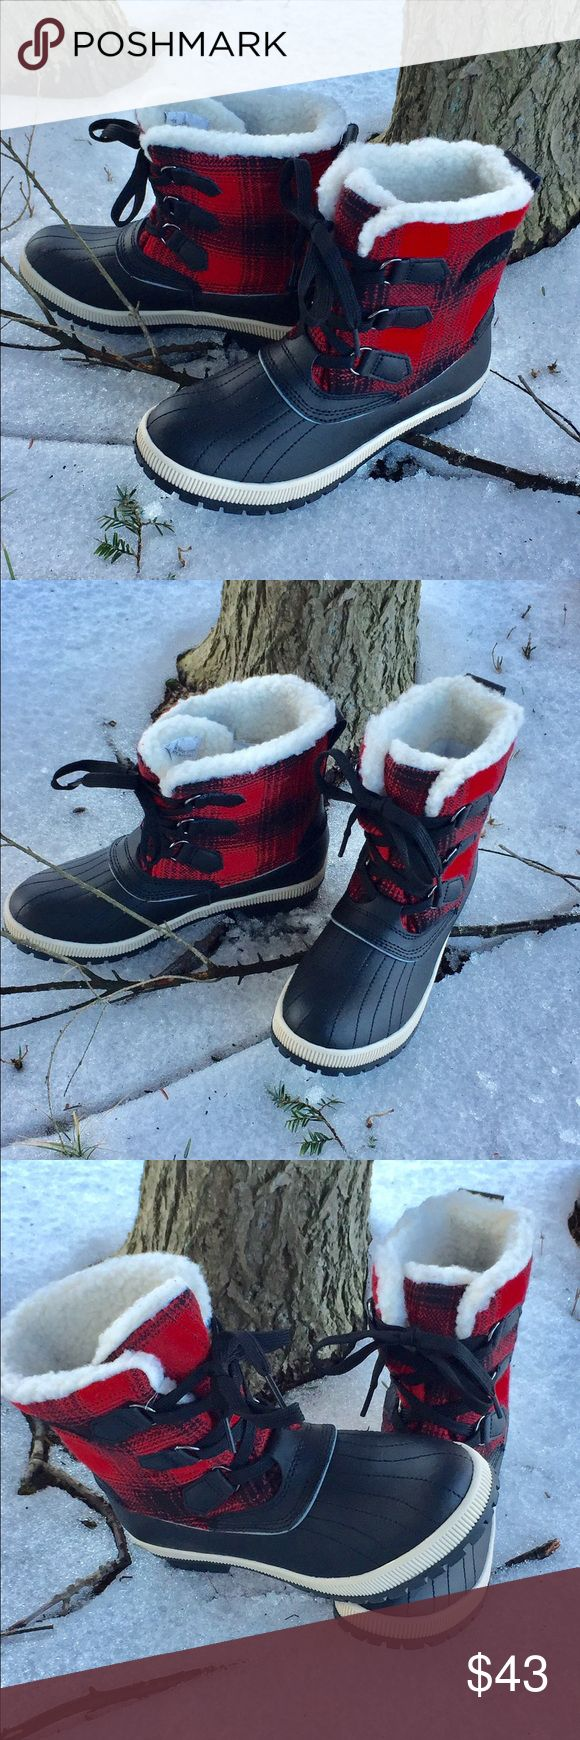 KHOMBU Boots. Fun and comfortable Winter booties. Brand new! Red and Black Plaid is really eye catching! Khombu Shoes Ankle Boots & Booties